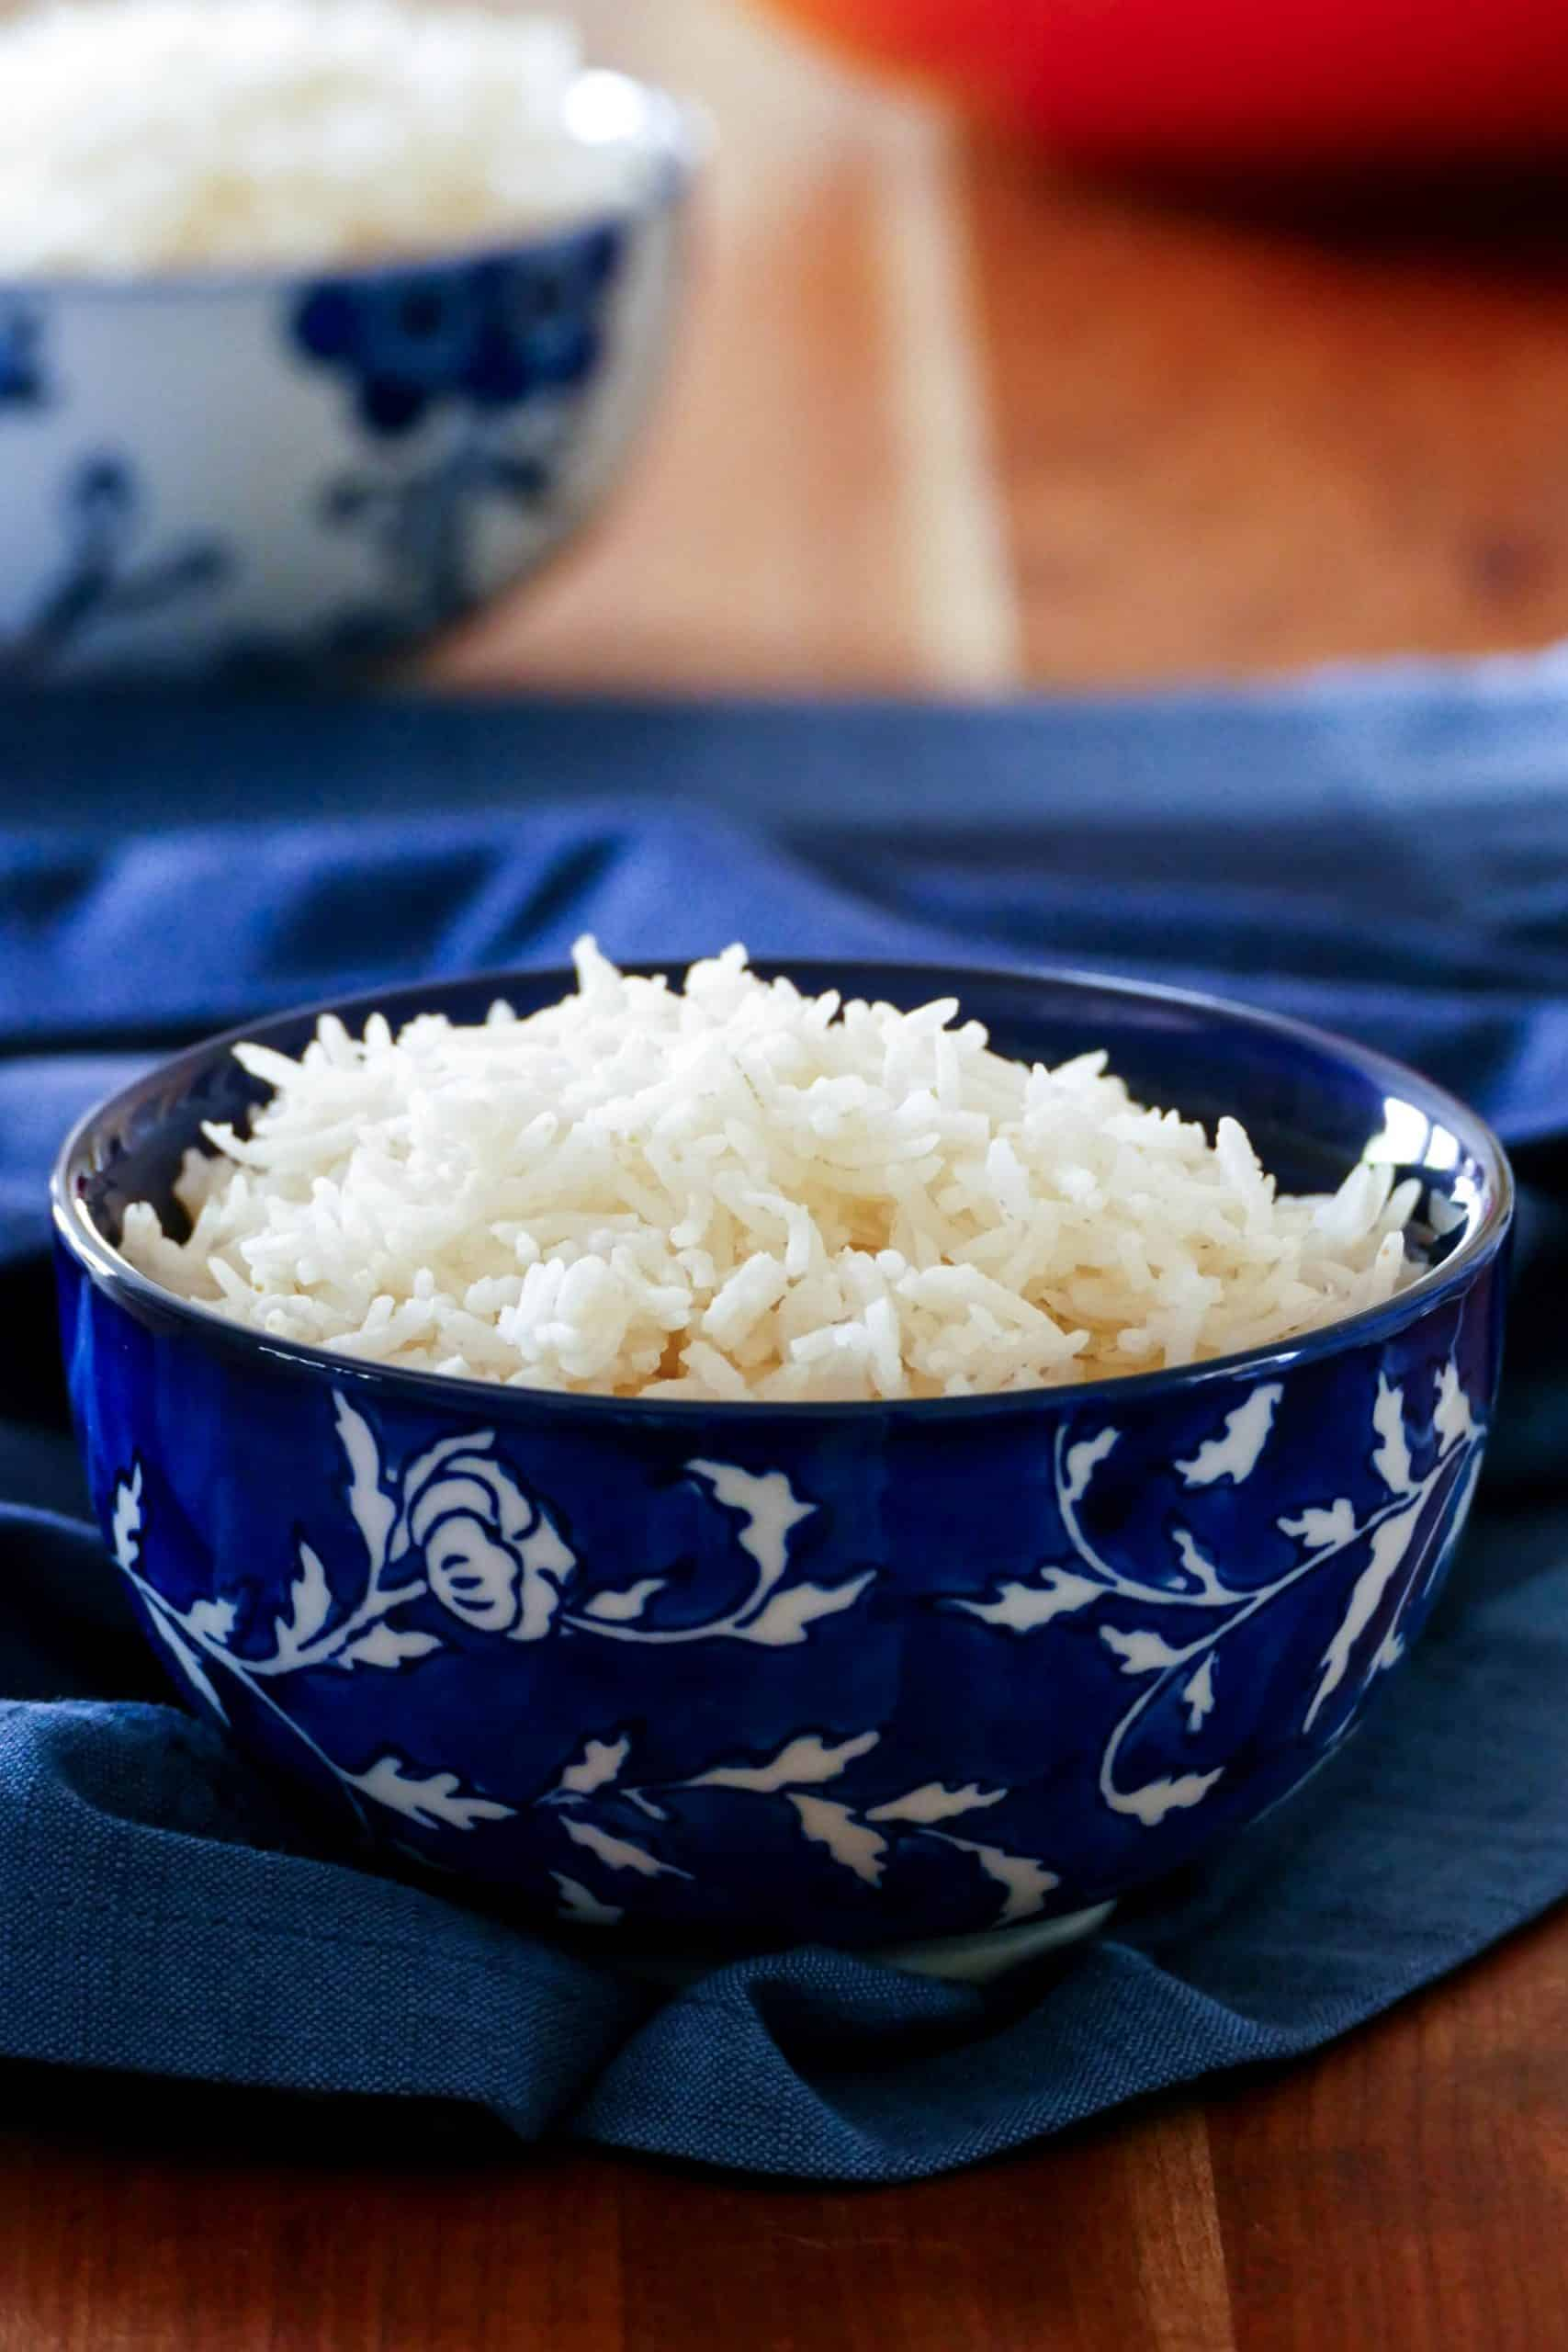 Instant Pot Rice using pot in pot method - two bowls of white rice